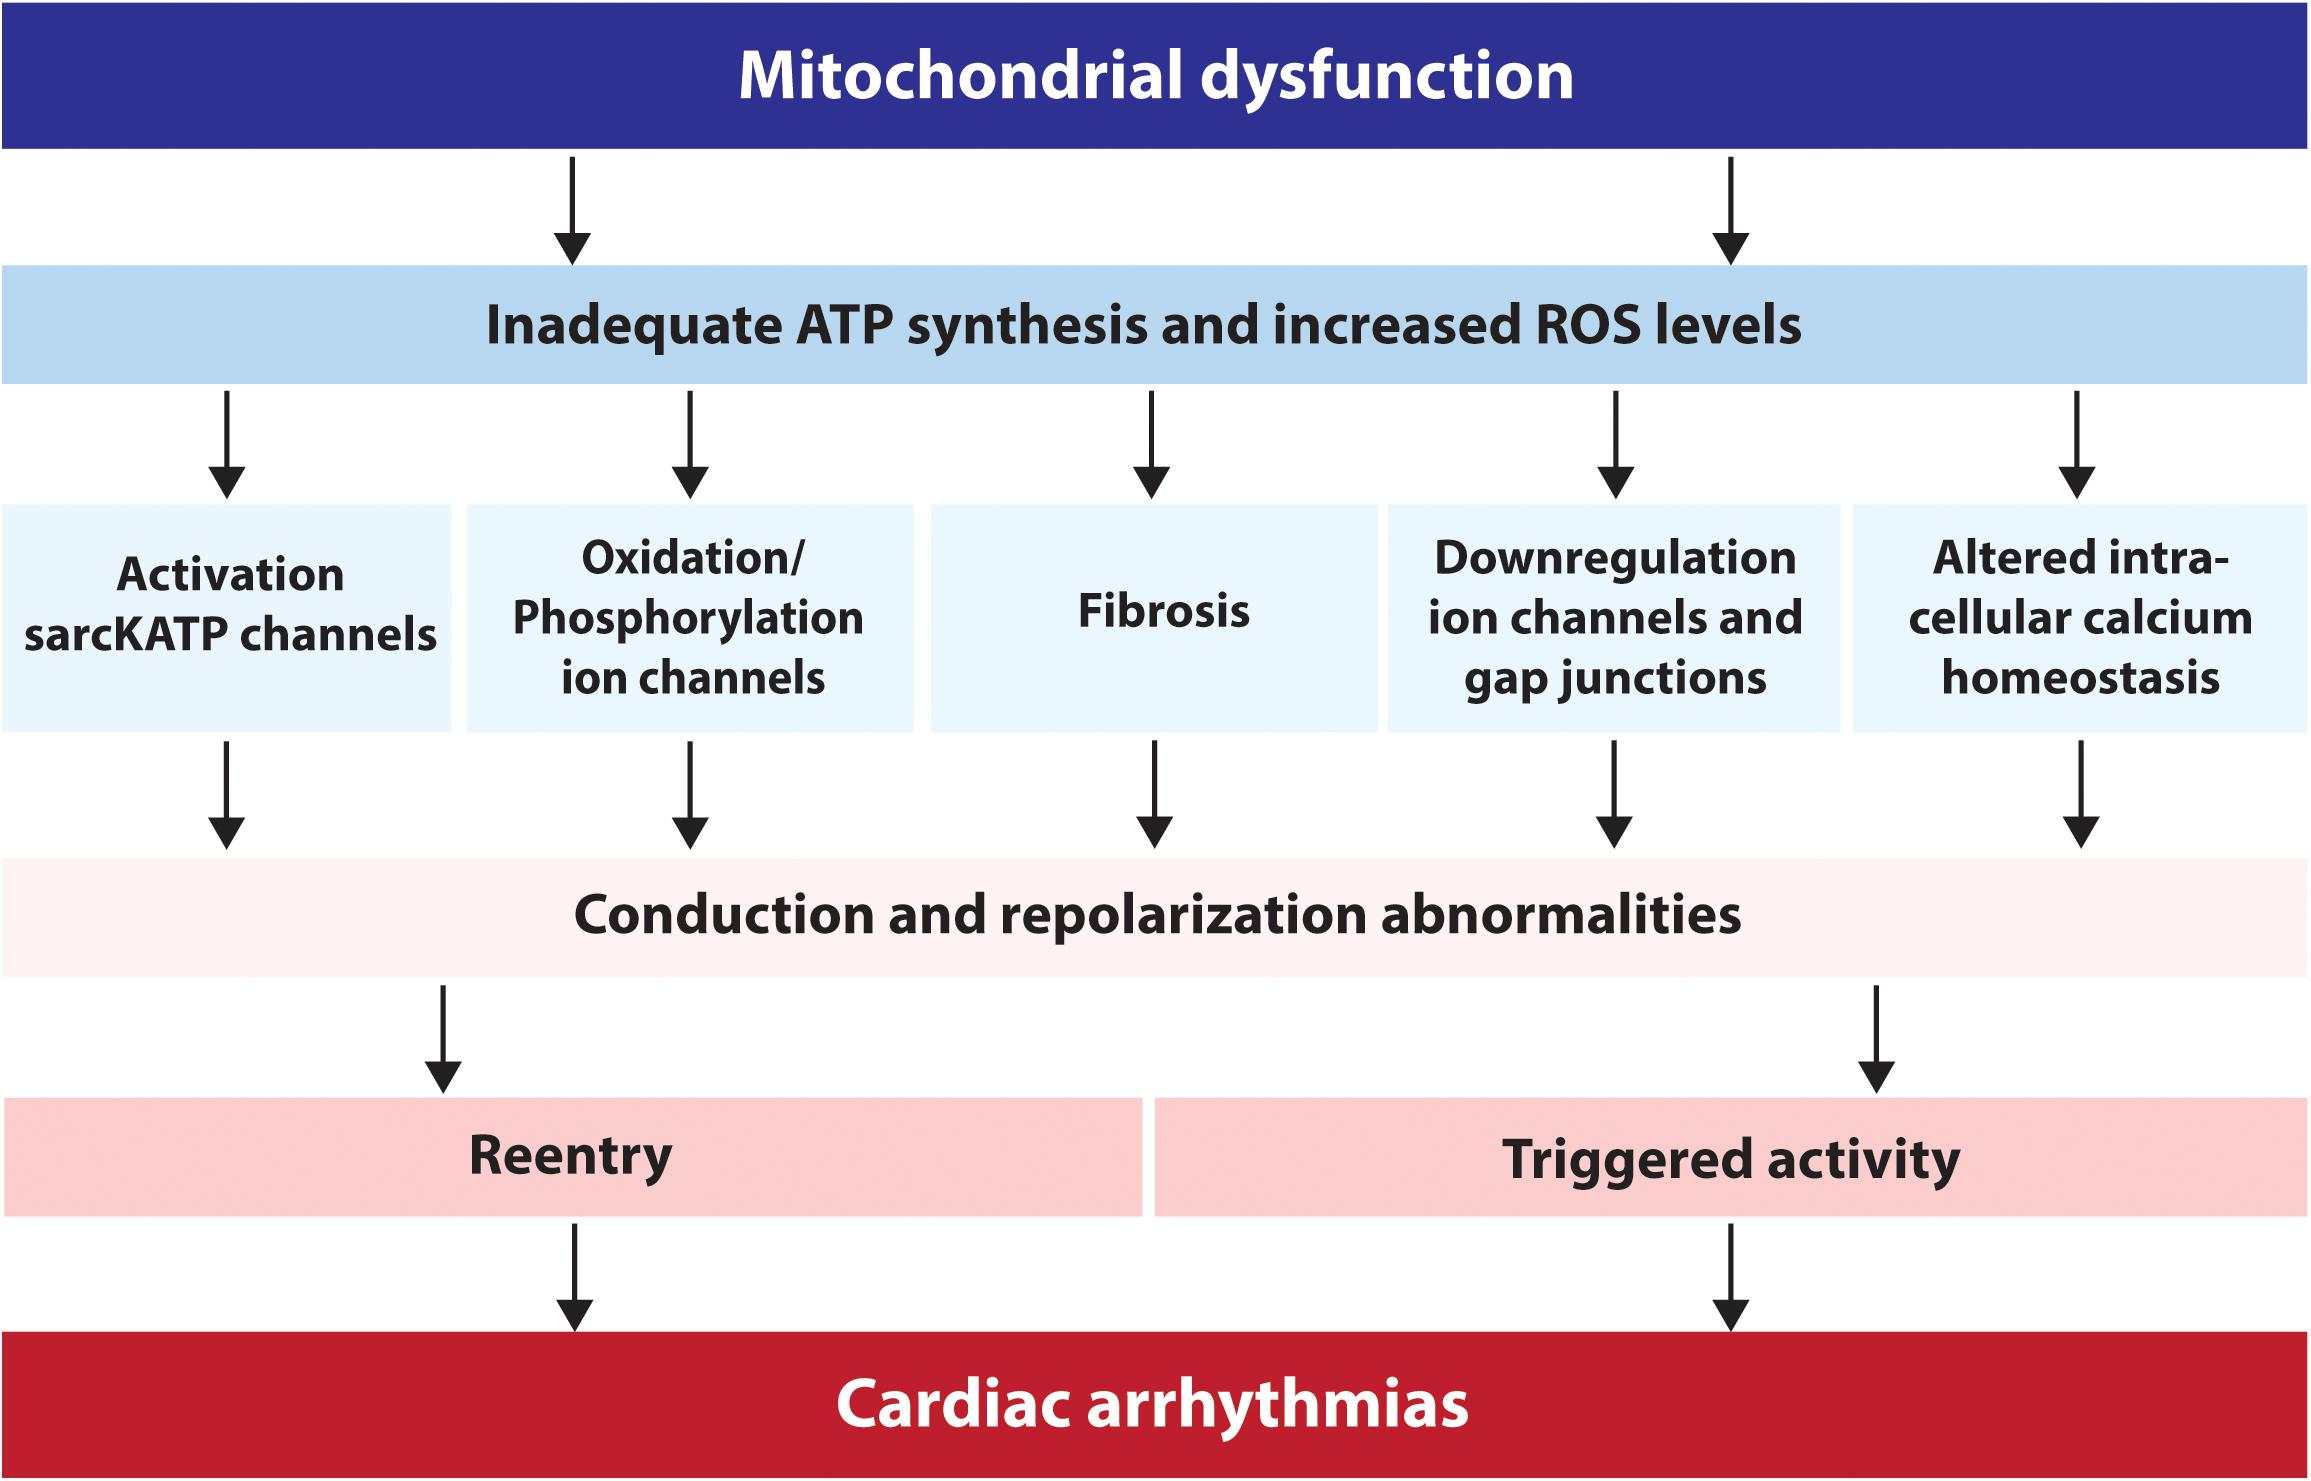 Rvs Tv Kast.Frontiers Mitochondrial Dysfunction As Substrate For